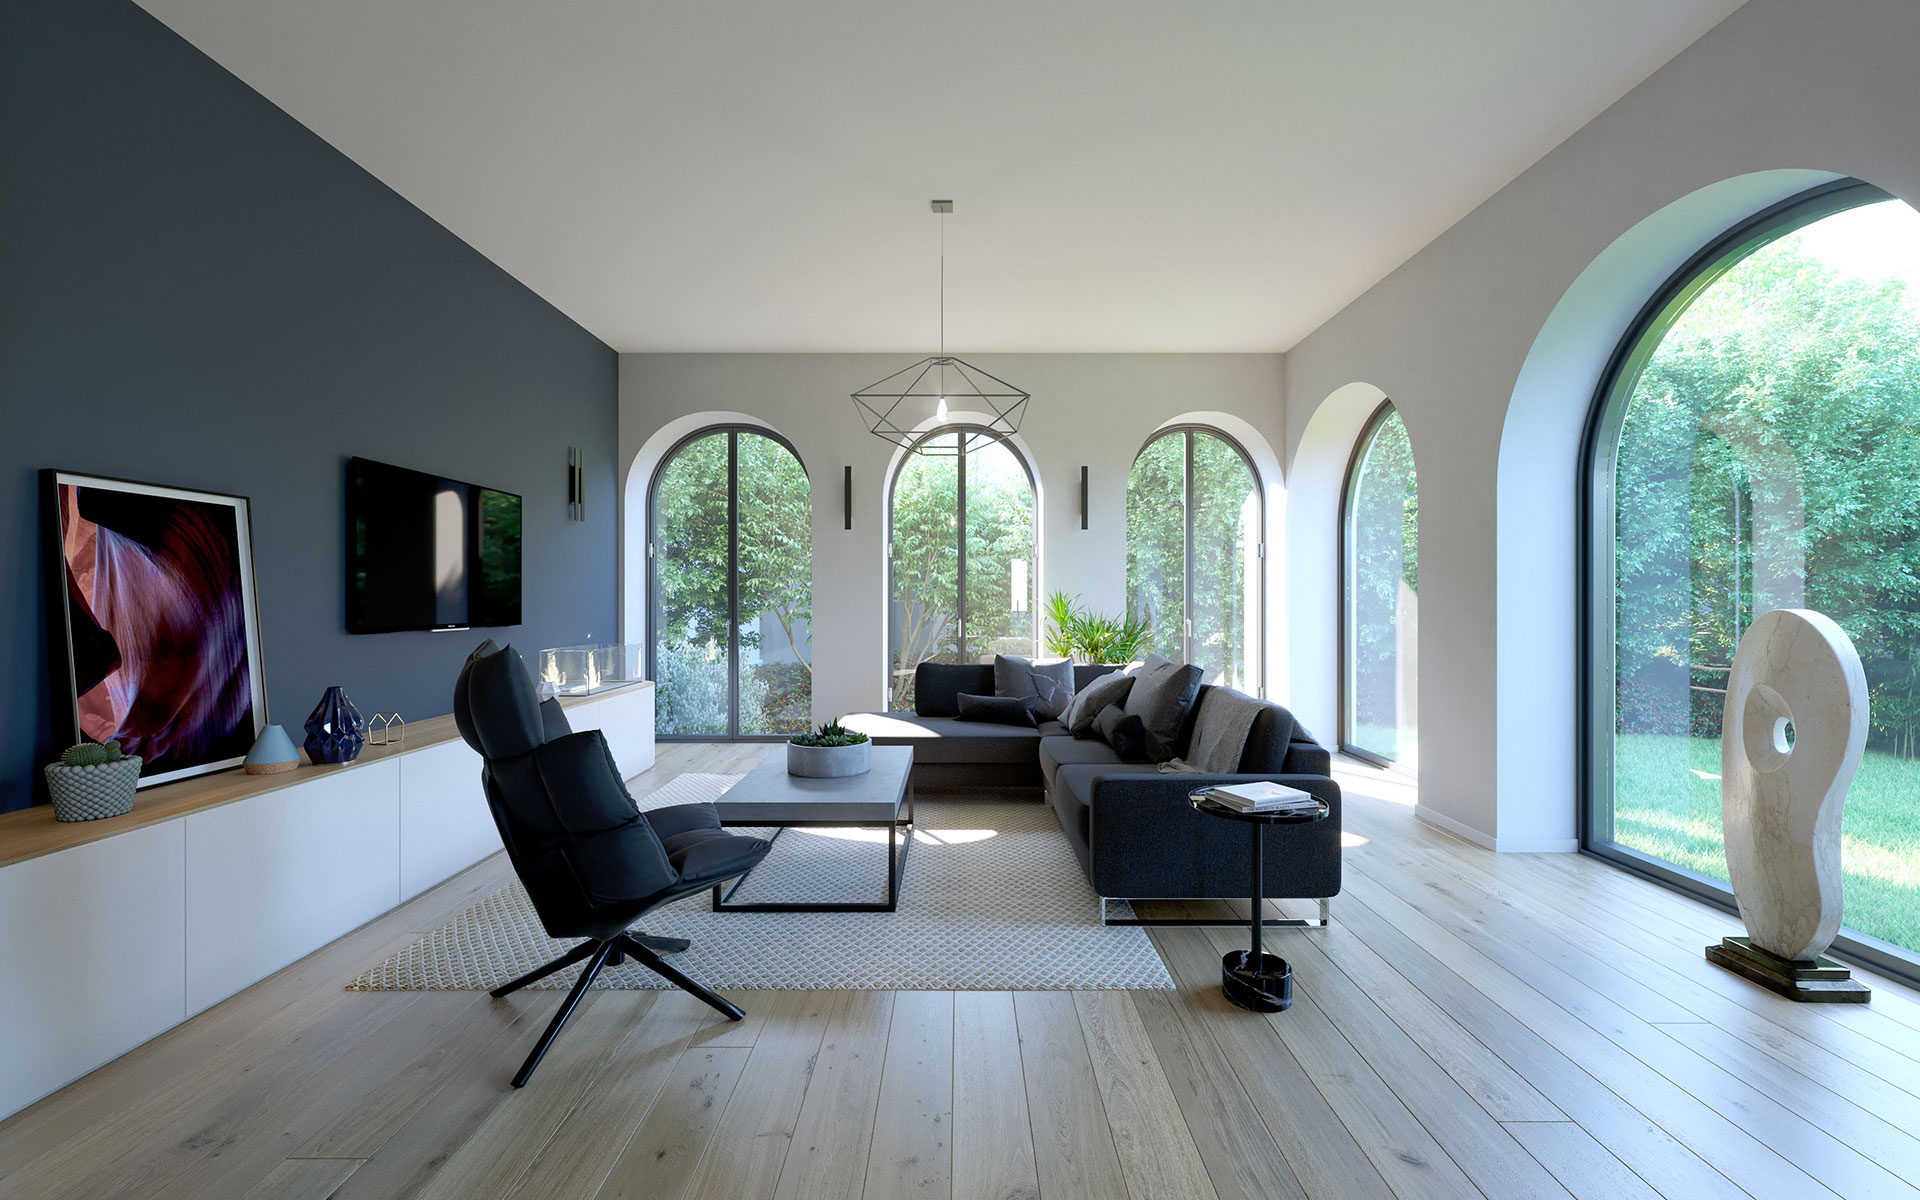 Visualization of a luxury interior for real estate development